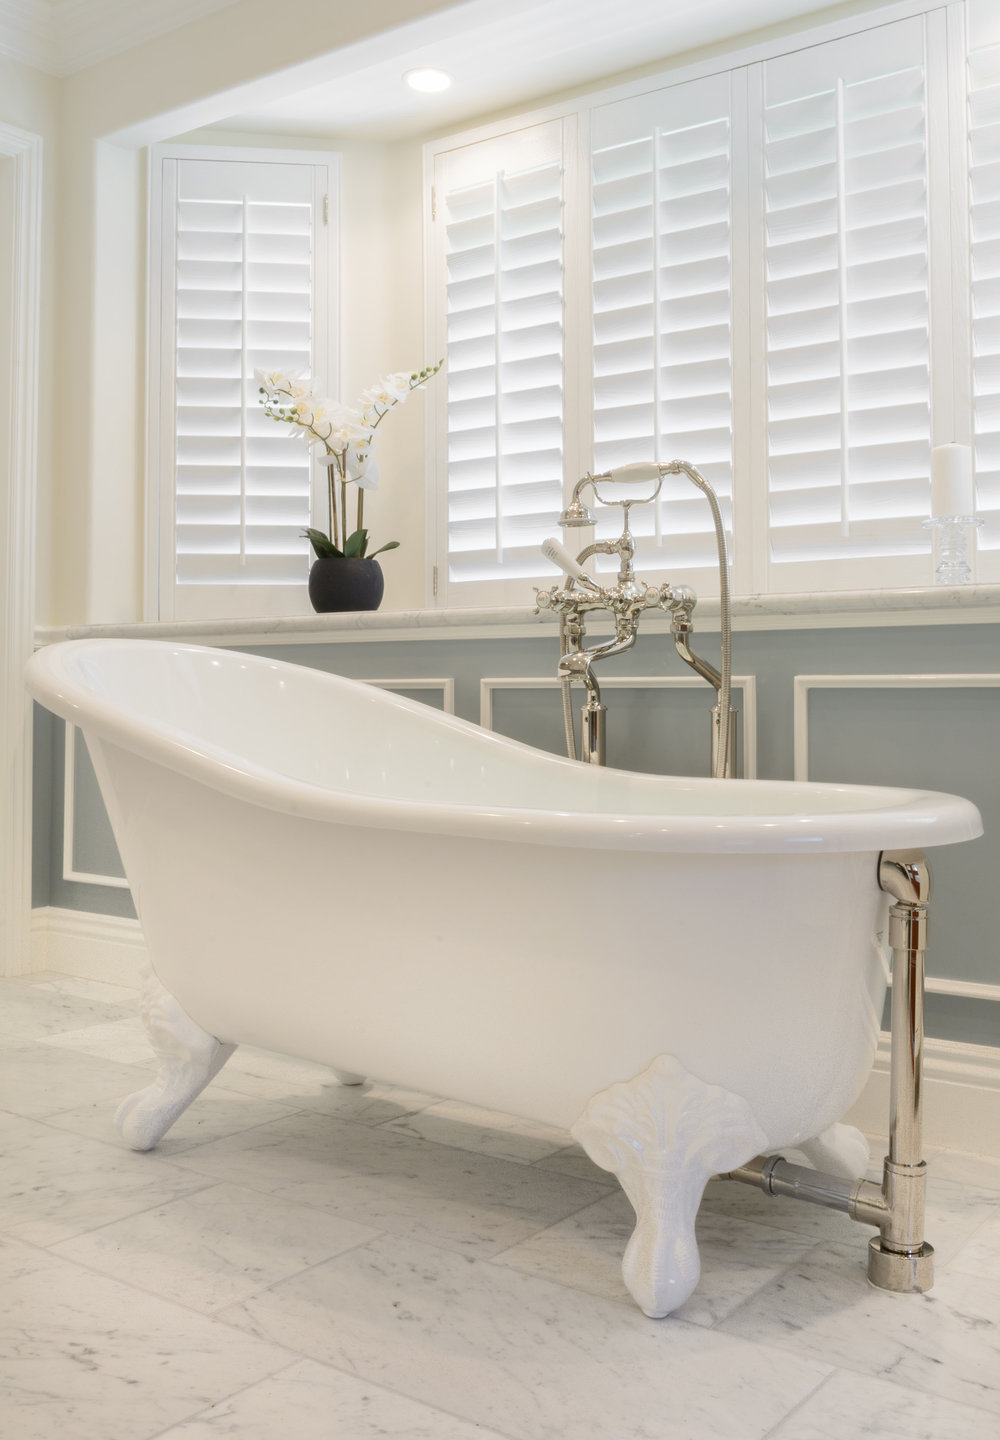 This crisp white slipper bathtub combined with soft grey carrera marble floor, overall neutral colors and large bay window with white interior shutters provide for a relaxing experience